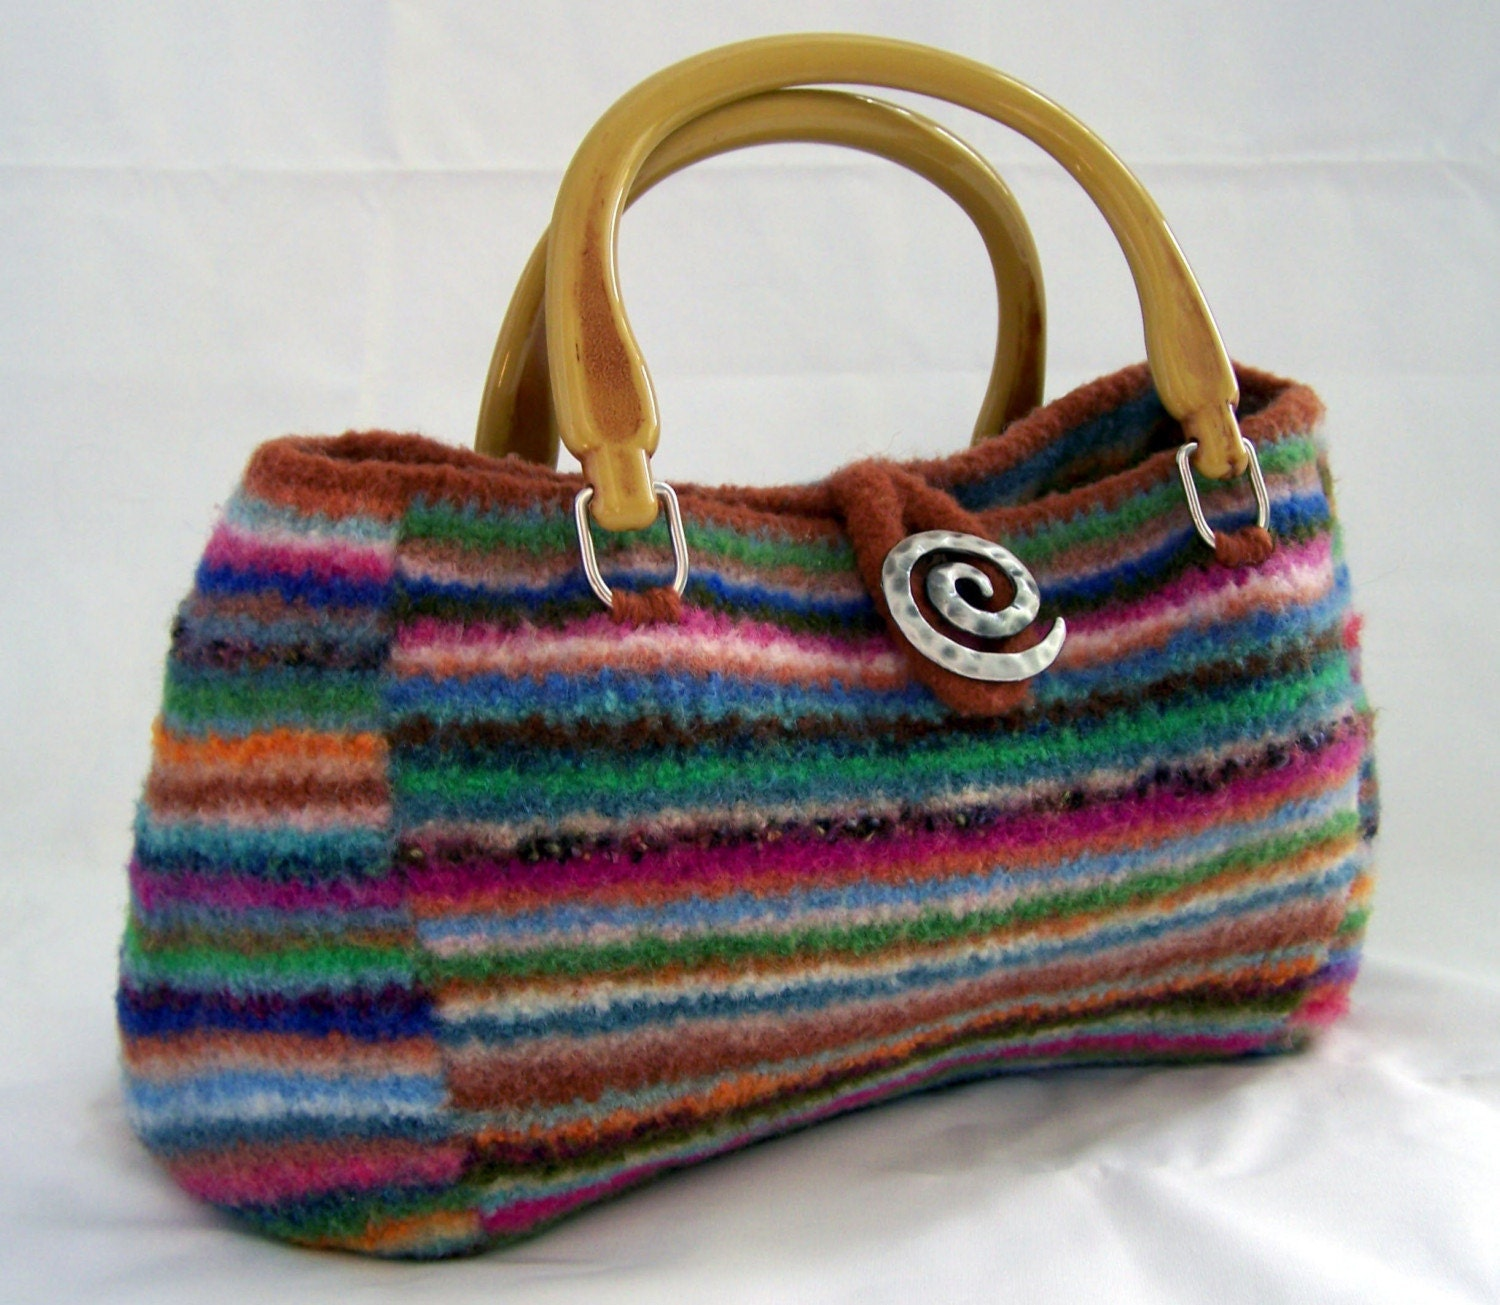 Knitting Pattern Felted Bag : Knitting PATTERN Felted Doctor Bag Purse Satchel PDF